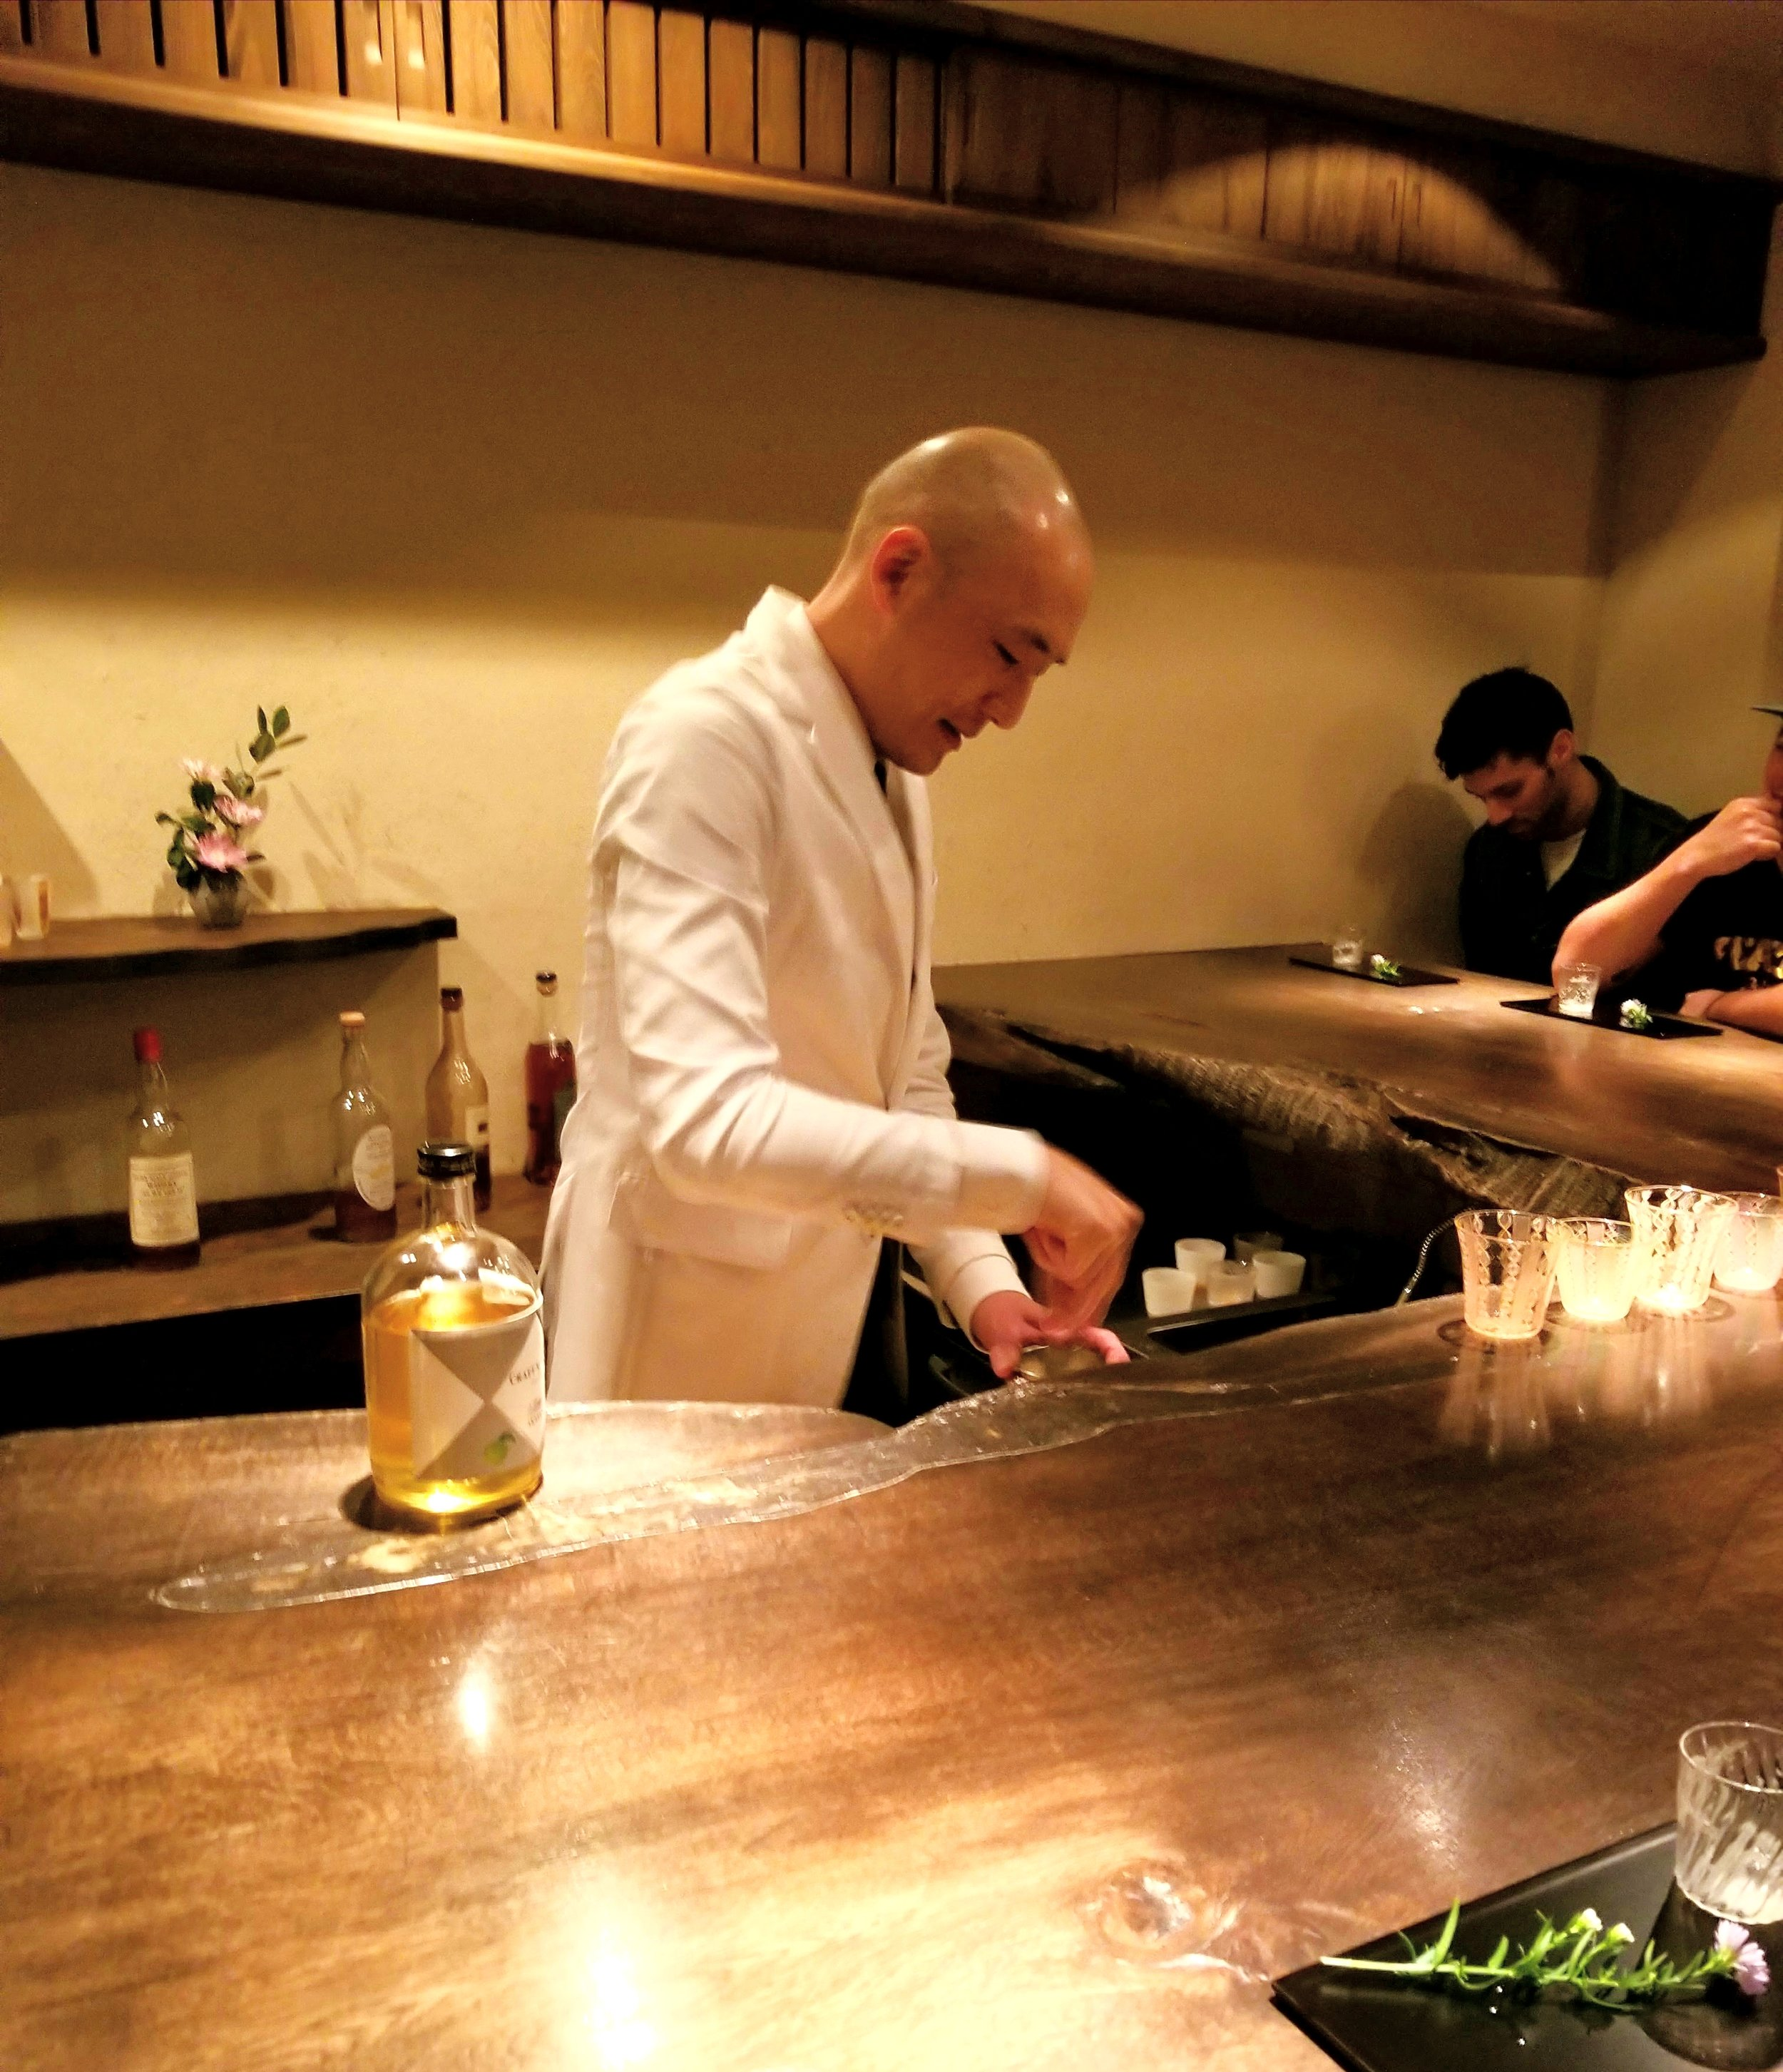 uprooted-traveler-gen-yamamoto-cocktail-foolproof-guide-to-tokyo.jpg